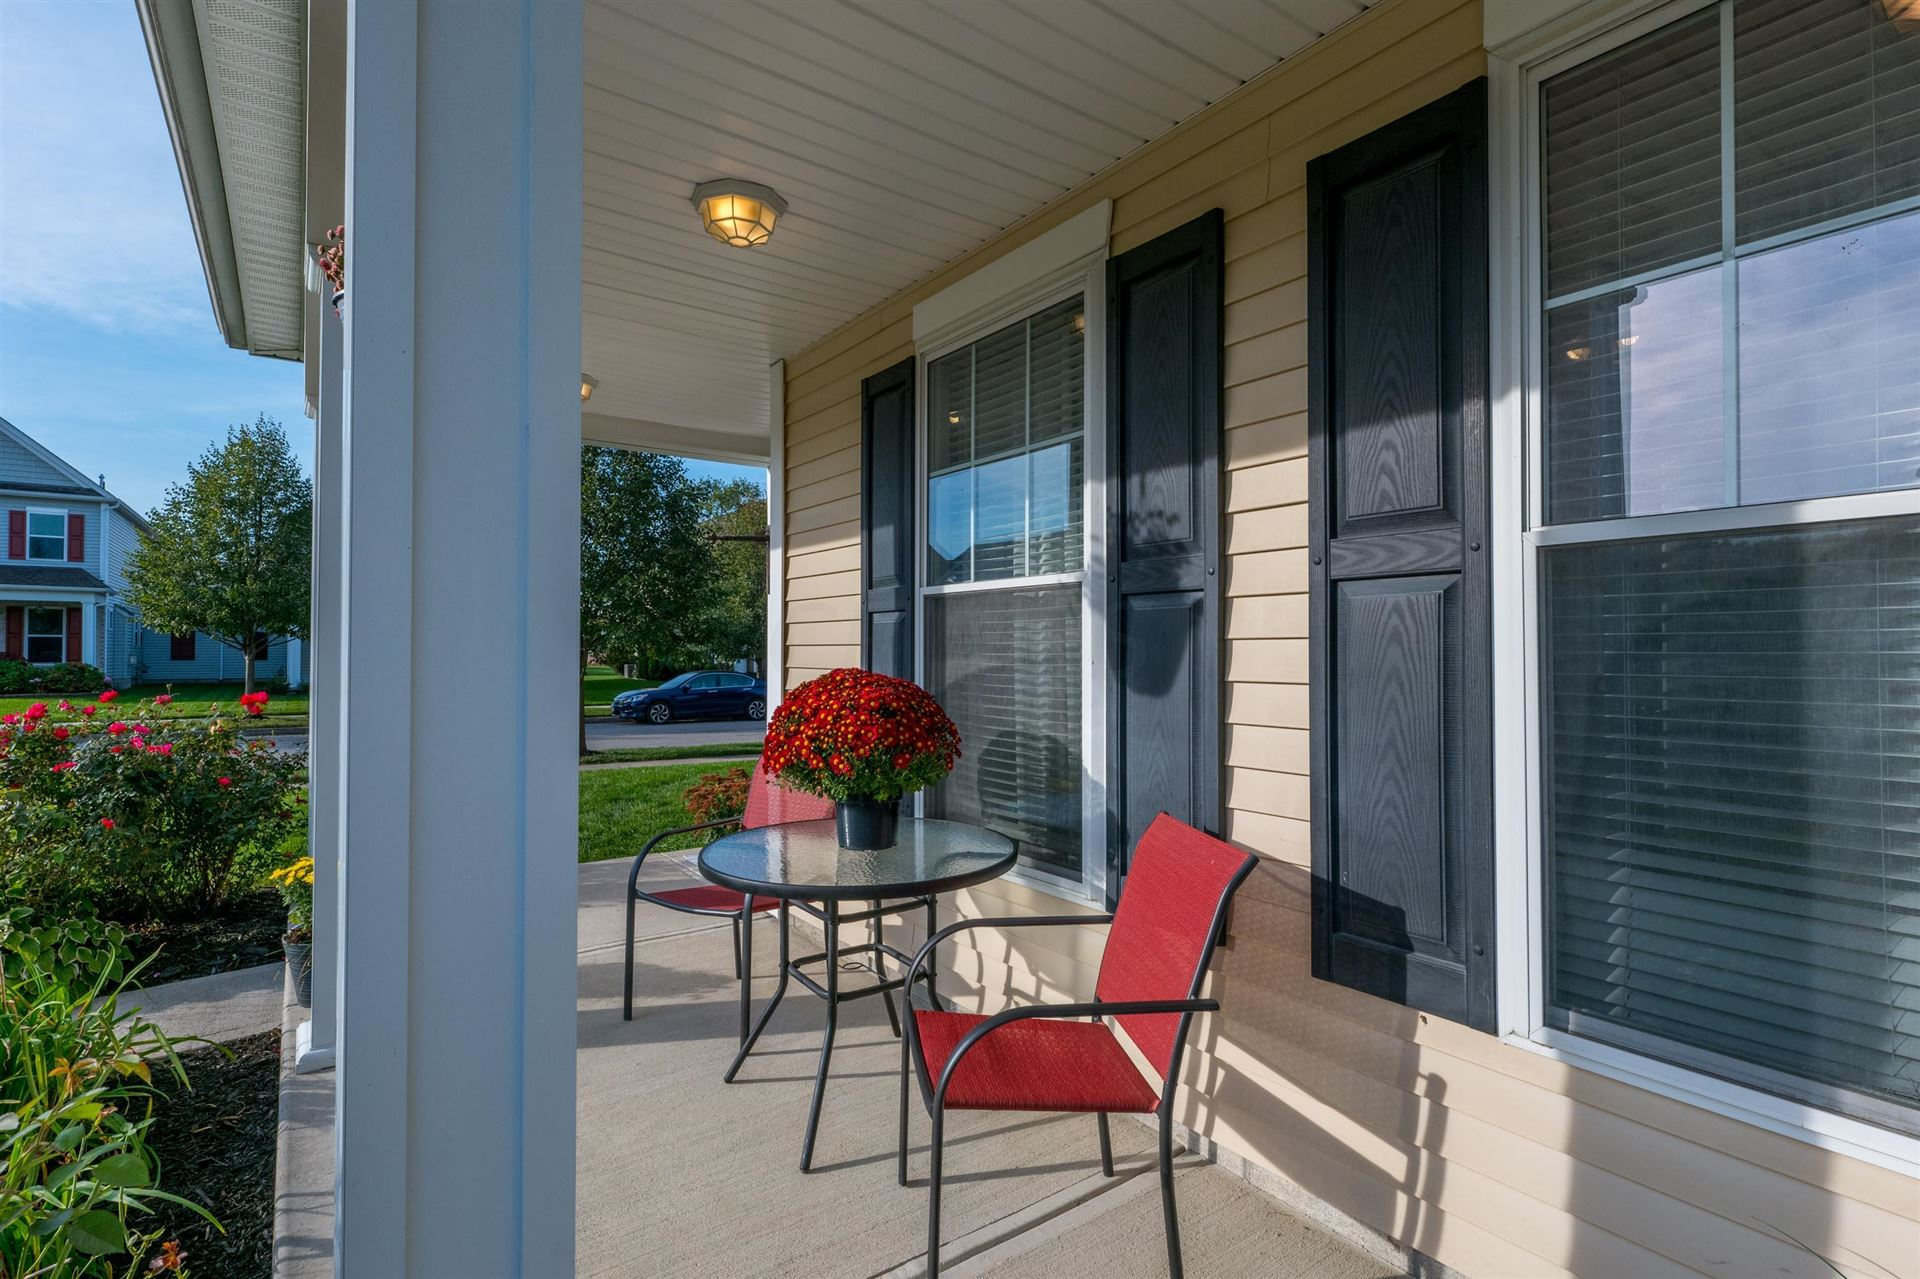 Photo of 305 Griffiths Harbor Drive, Delaware, OH 43015 (MLS # 221040501)